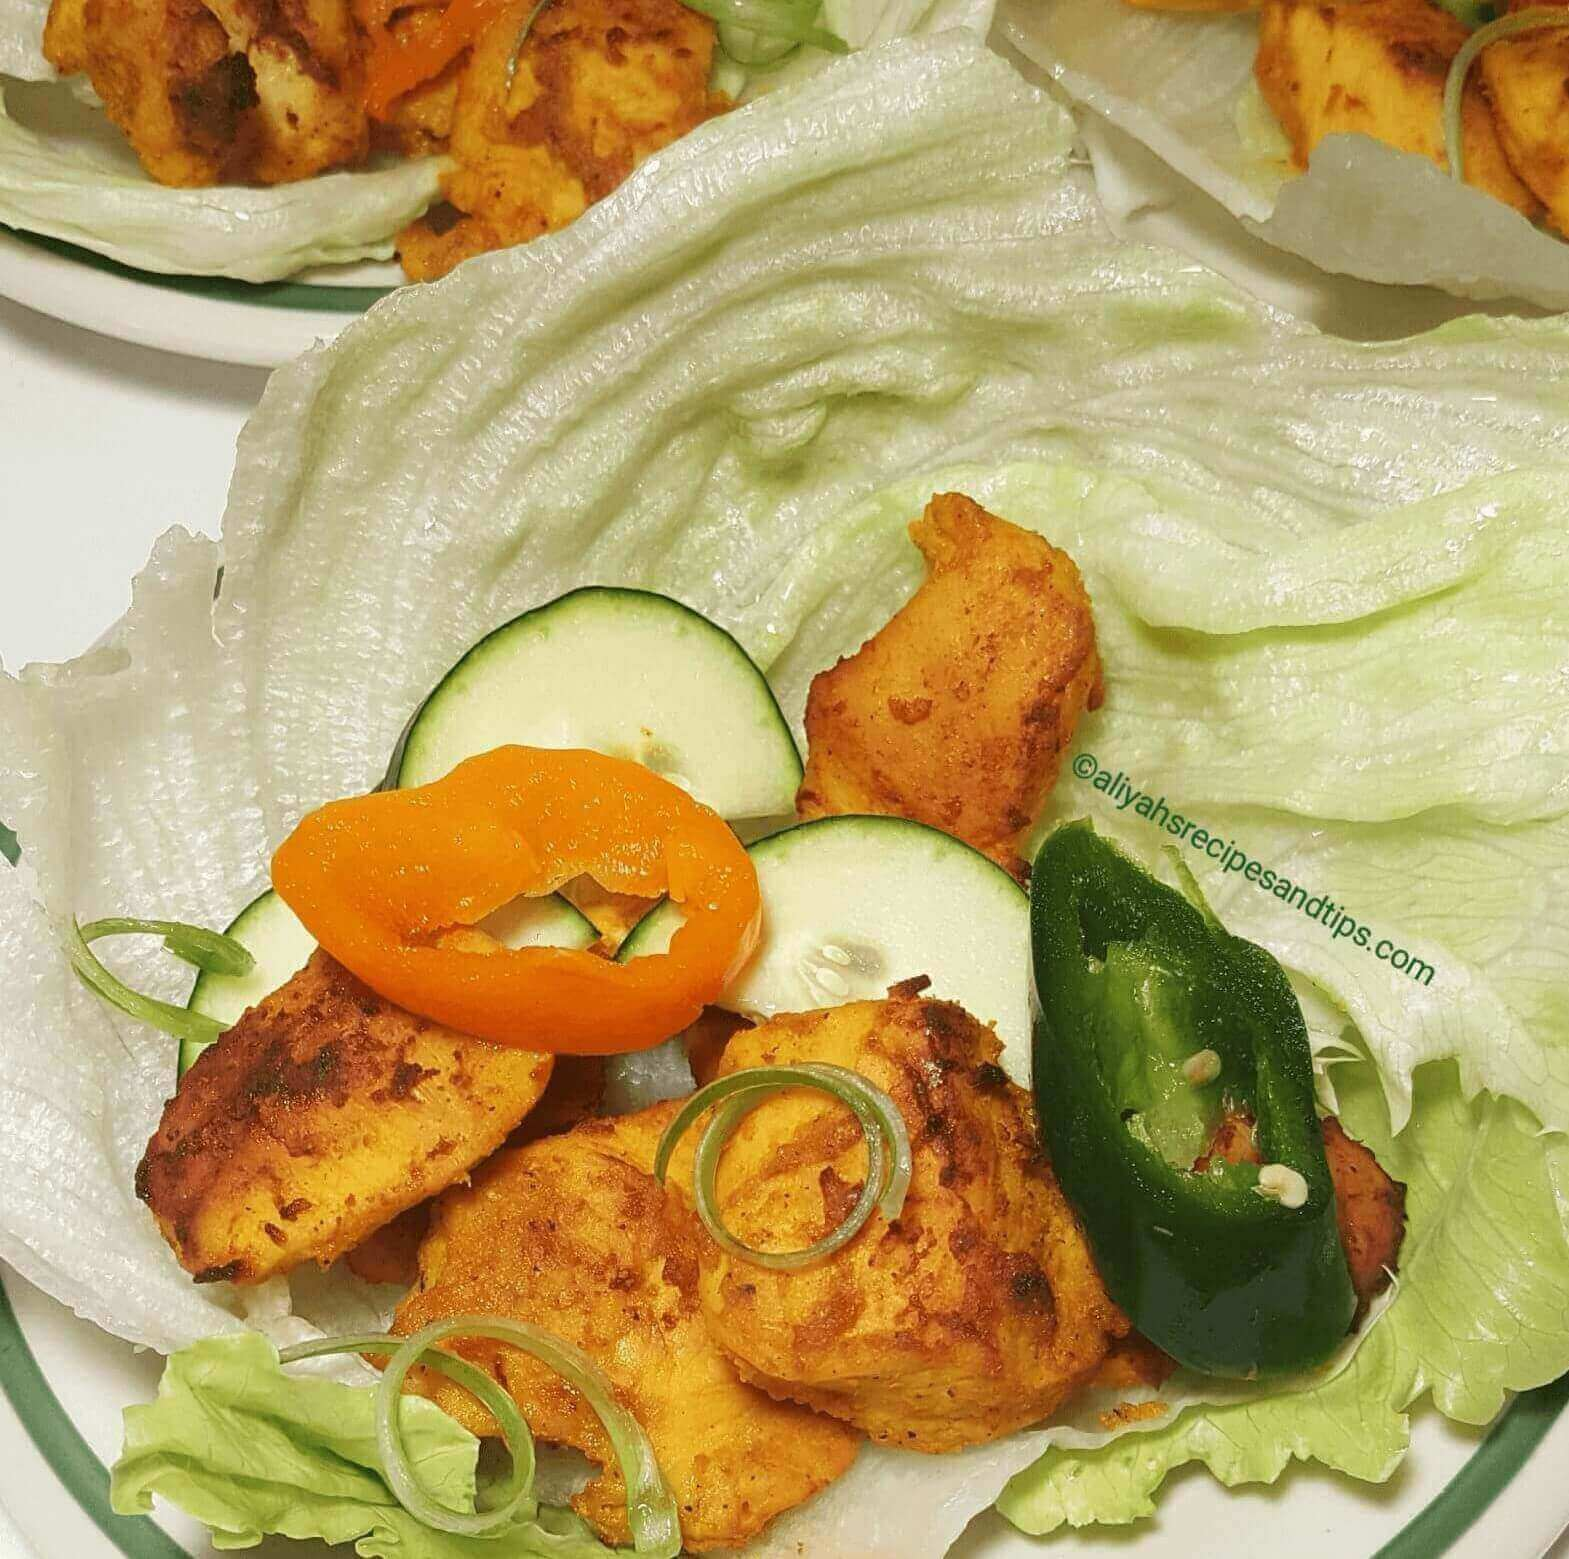 coconut turmeric chicken wrap, chicken wrap, chicken, wrap, coconut turmeric, chicken lettuce, coconut curry, coconut milk, lettuce wrap, chicken salad